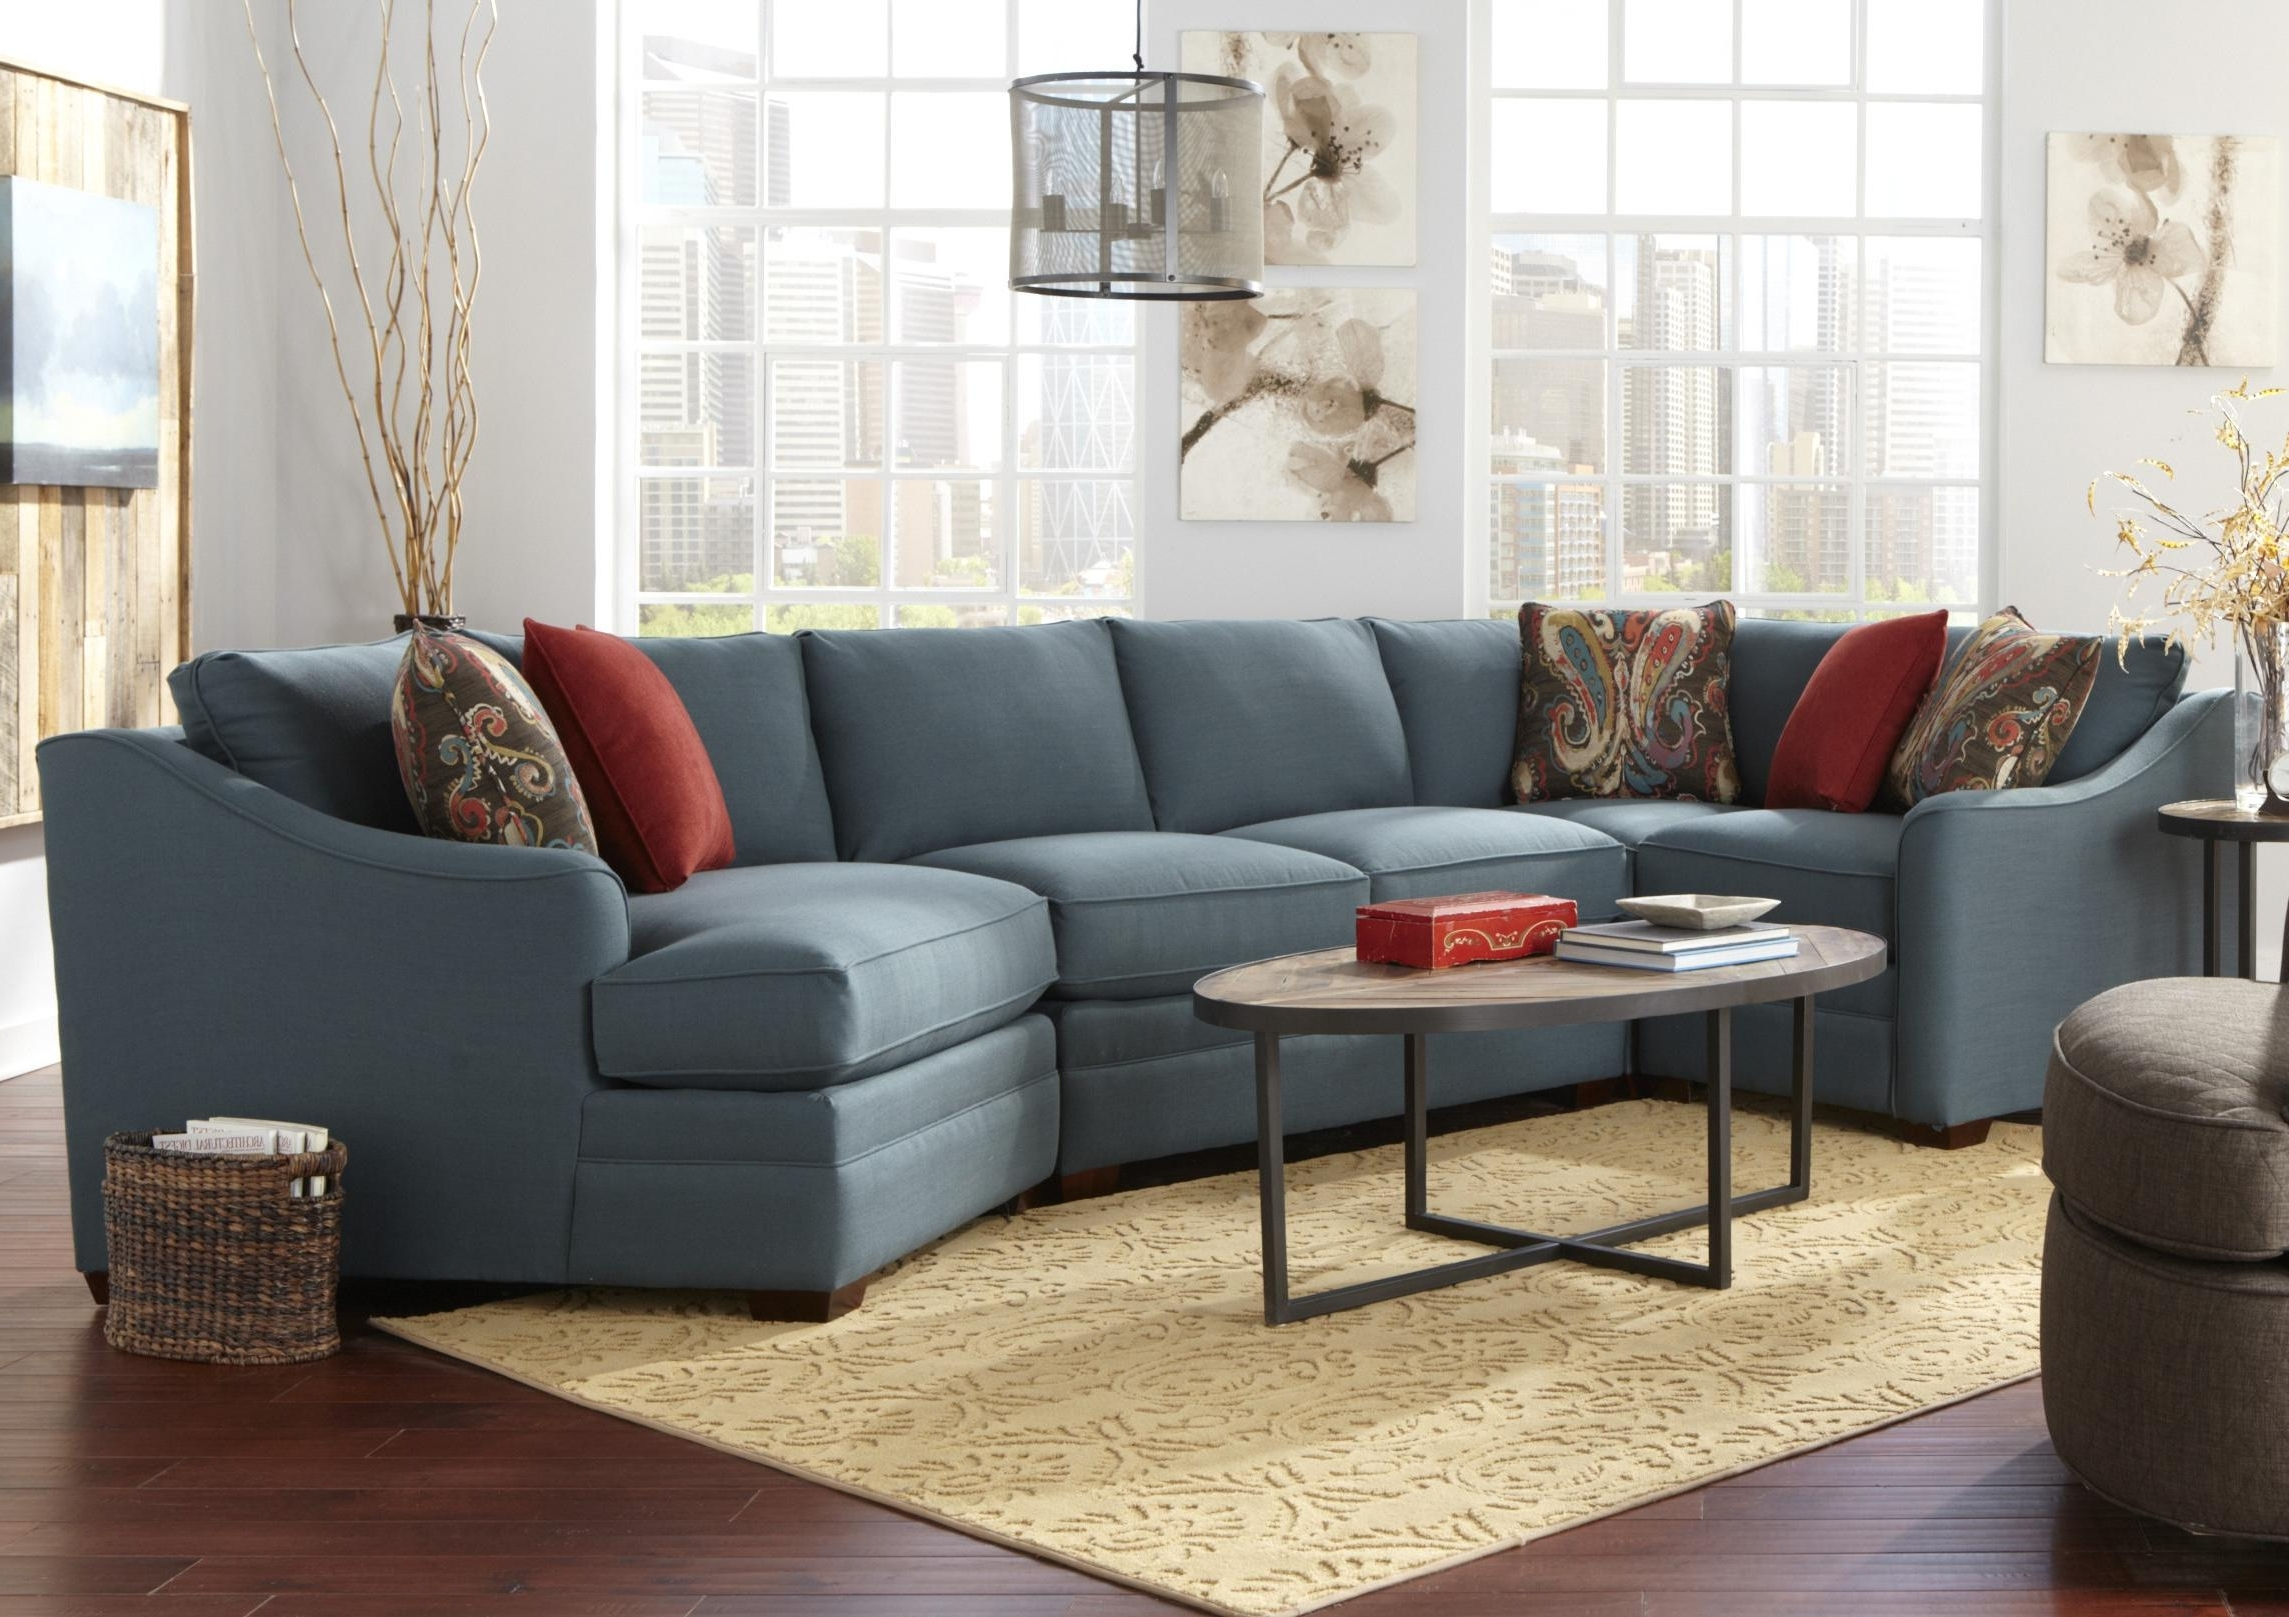 Sectional Sofas With Cuddler Chaise Within Most Recent Four Piece <B>Customizable</b> Sectional Sofa With Raf Cuddler (View 5 of 20)